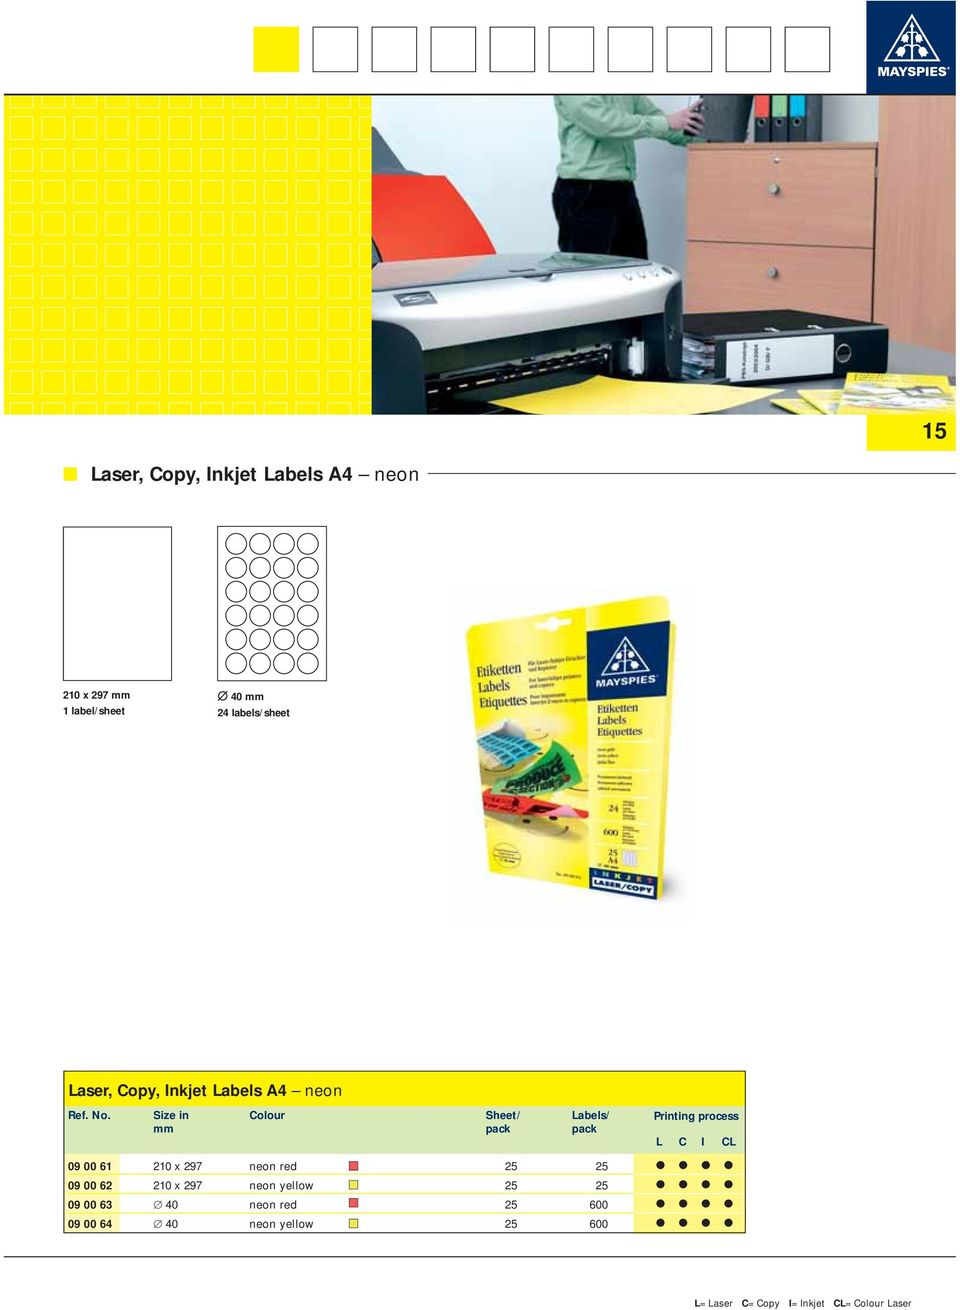 Laser Copy Inkjet Labels A4 Pdf Circuit Boards Graphic Overlays Name Plates Decals And 297 Neon Red 25 09 00 62 210 X Yellow